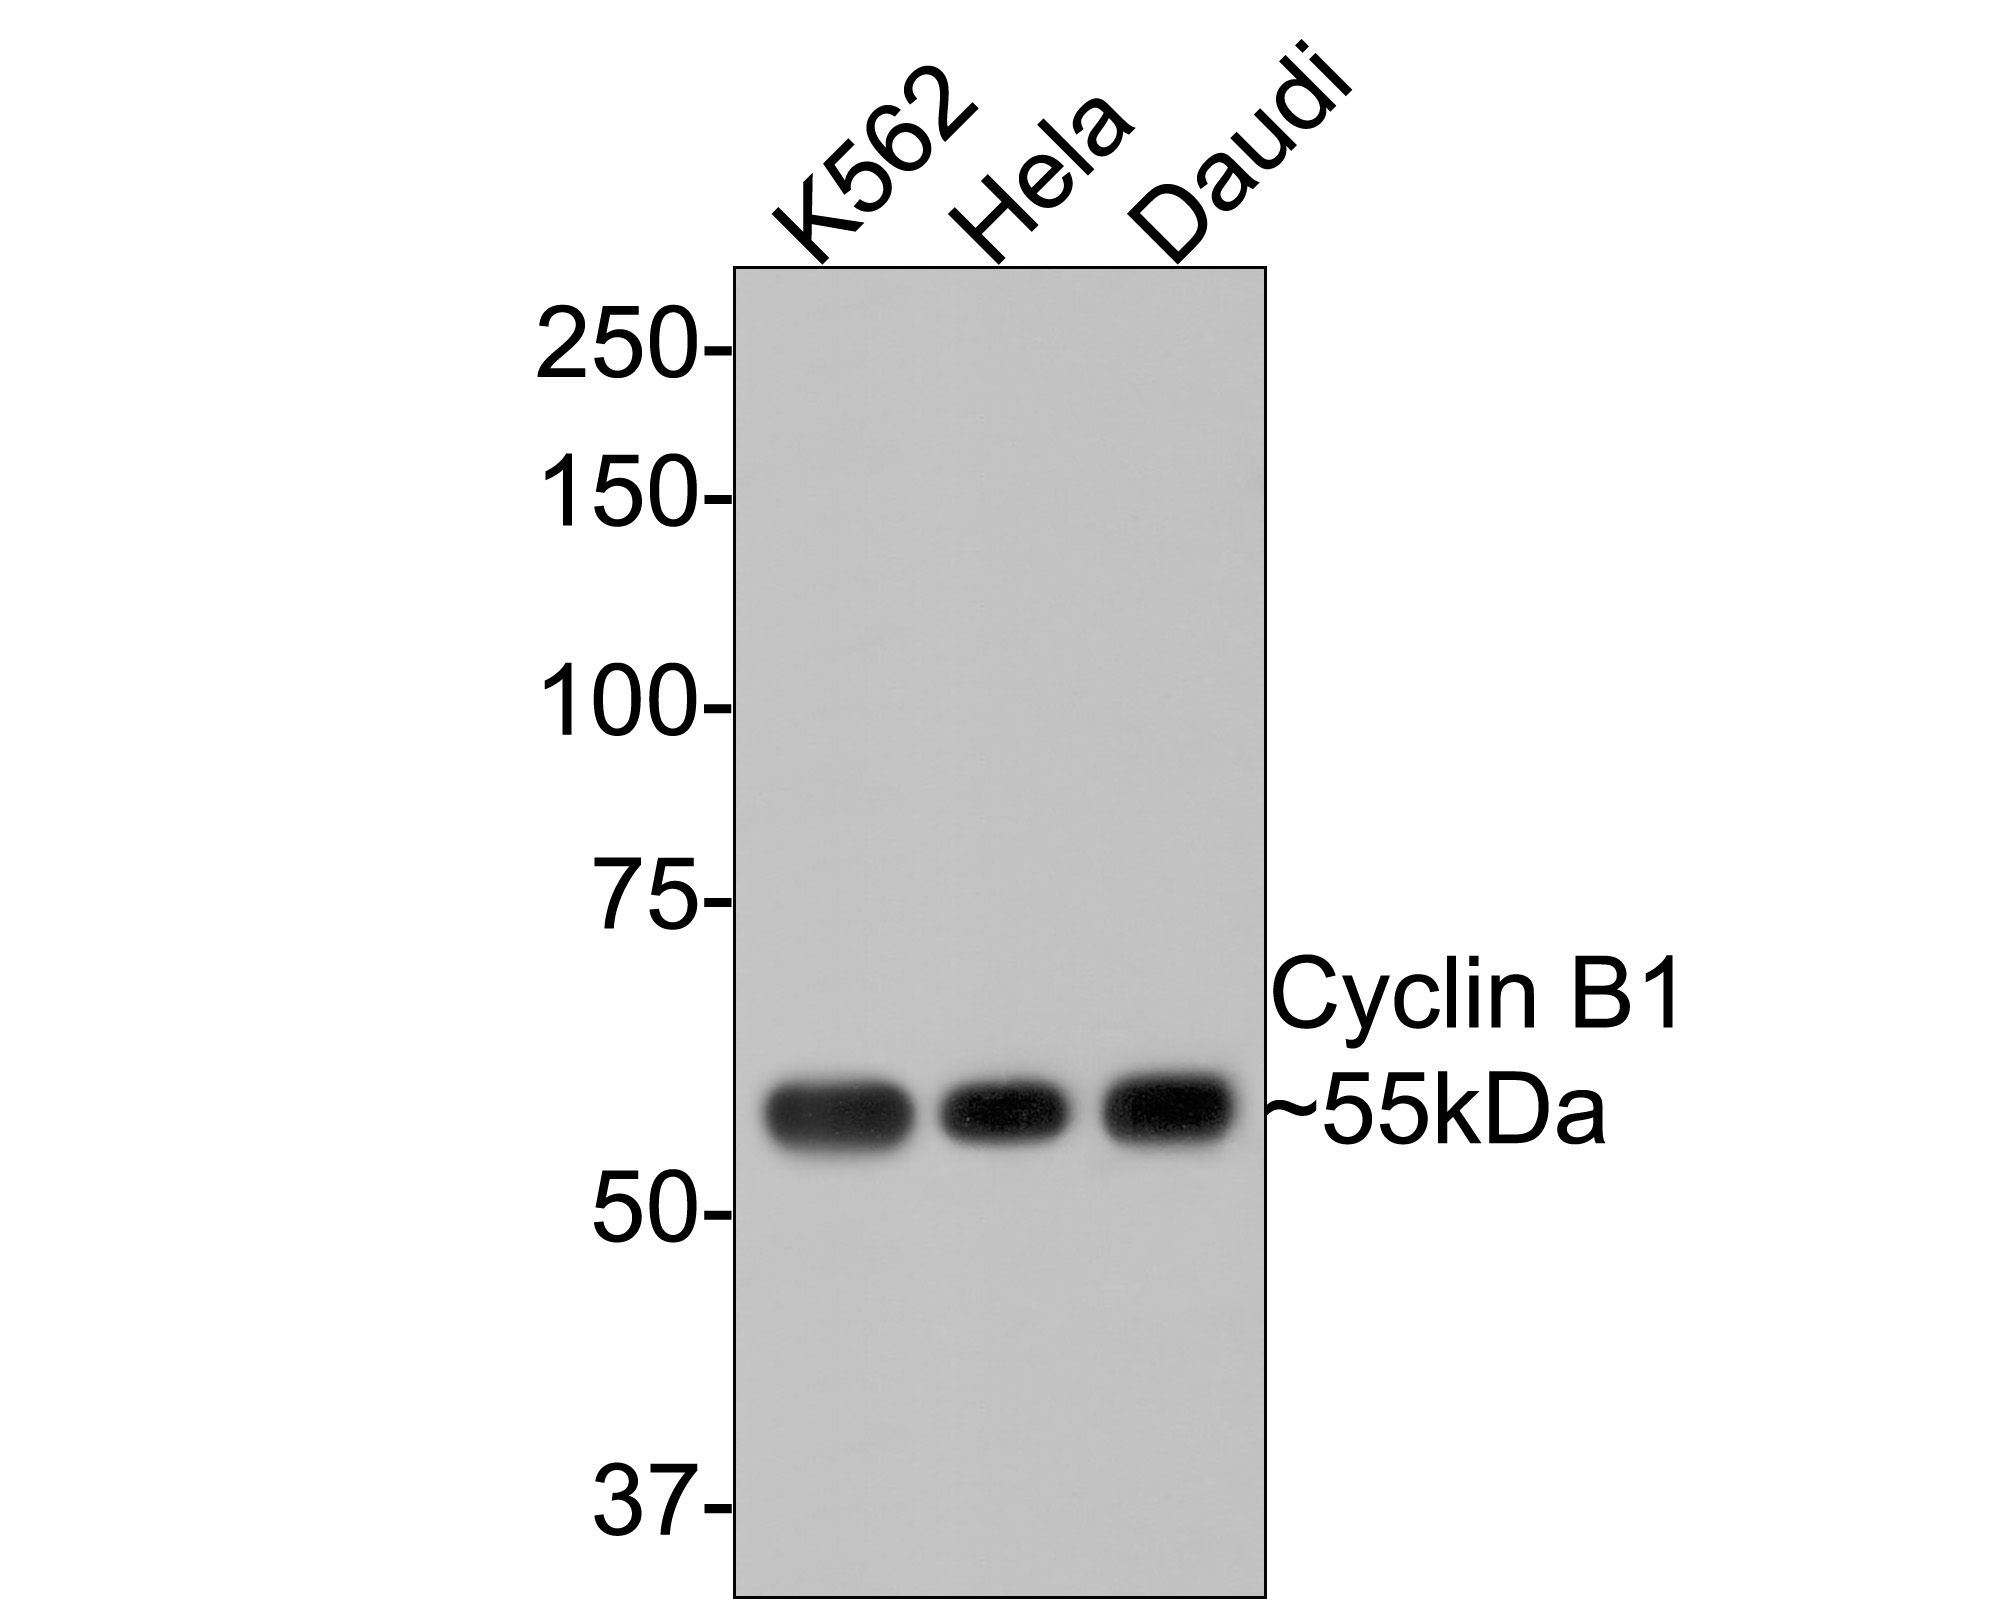 Western blot analysis of Cyclin B1 on different lysates. Proteins were transferred to a PVDF membrane and blocked with 5% BSA in PBS for 1 hour at room temperature. The primary antibody (ET1608-27, 1/500) was used in 5% BSA at room temperature for 2 hours. Goat Anti-Rabbit IgG - HRP Secondary Antibody (HA1001) at 1:5,000 dilution was used for 1 hour at room temperature.<br /> Positive control: <br /> Lane 1: Hela cell lysate<br /> Lane 2: Daudi cell lysate<br /> Lane 3: K562 cell lysate